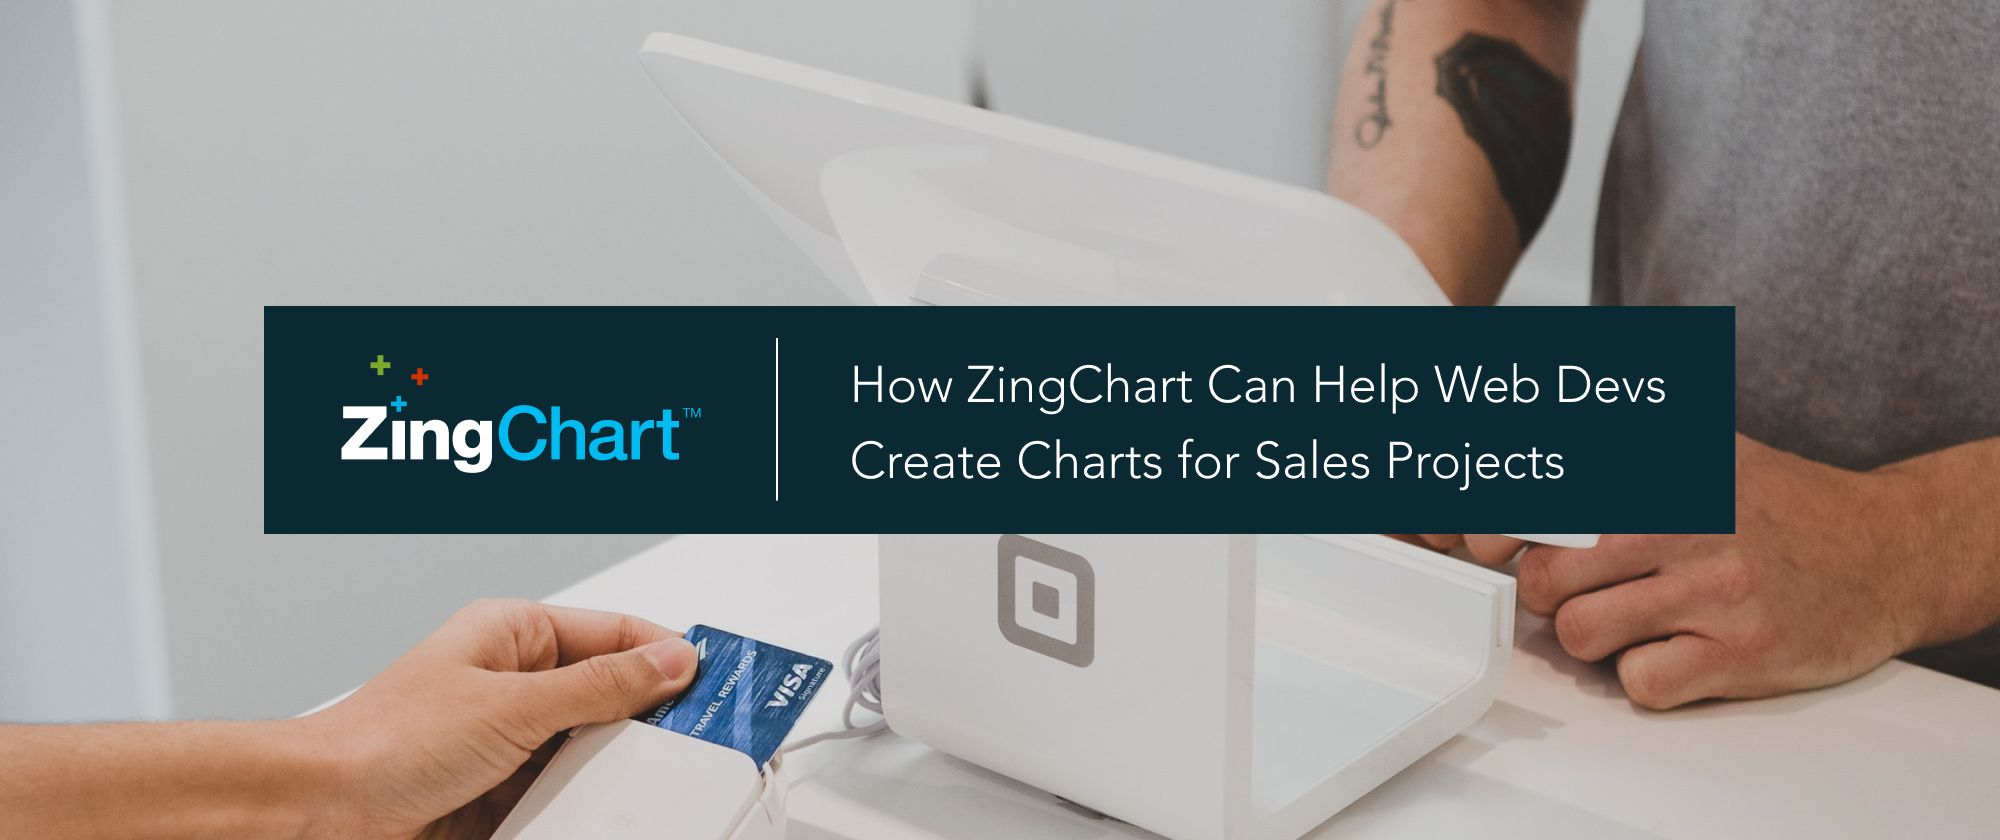 """Cover image for """"How ZingChart Can Help Web Devs Create Charts for Sales Apps"""" blog post"""